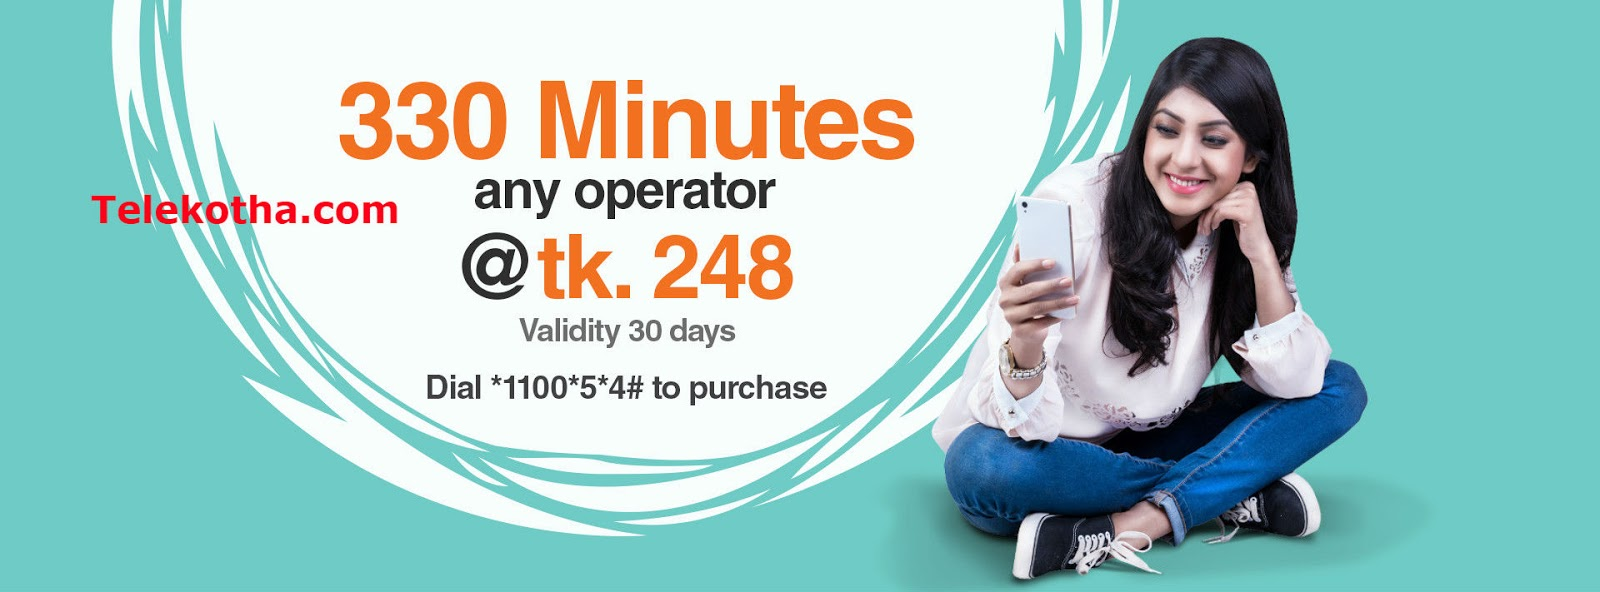 330 minutes (any operator) for just Tk. 248. Dial *1100*5*4#